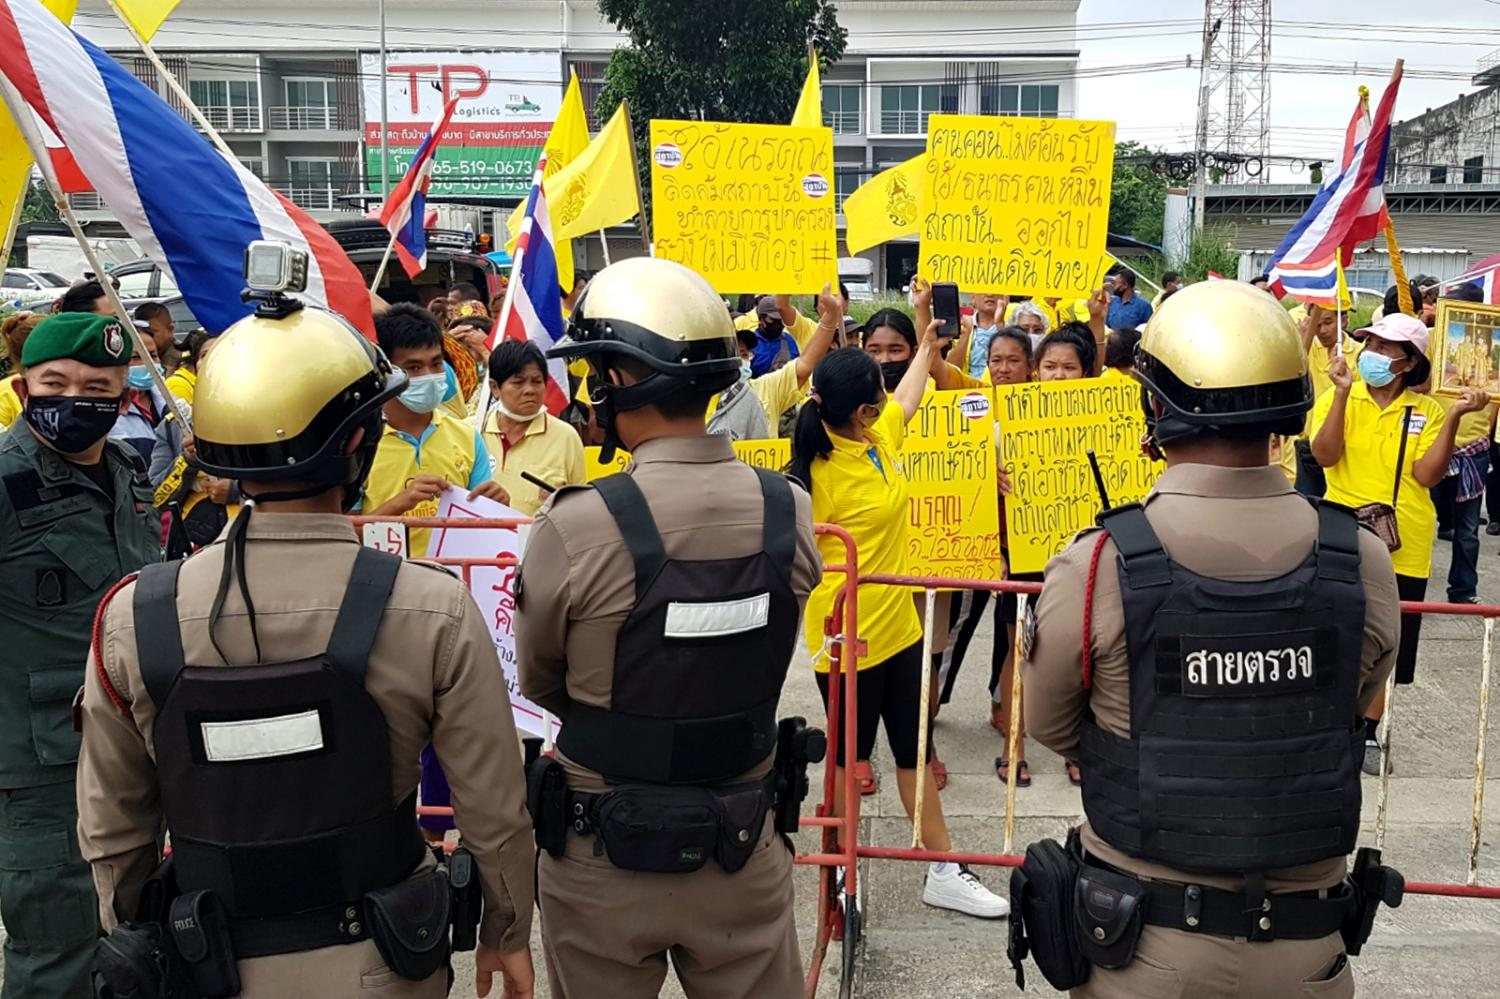 Police are seen at a hotel in Nakhon Si Thammarat's Muang district during a protest against Progressive Movement co-founder Thanathorn Juangroongruangkit who was in town to meet a group of students.(Photo by Nucharee Rakrun)